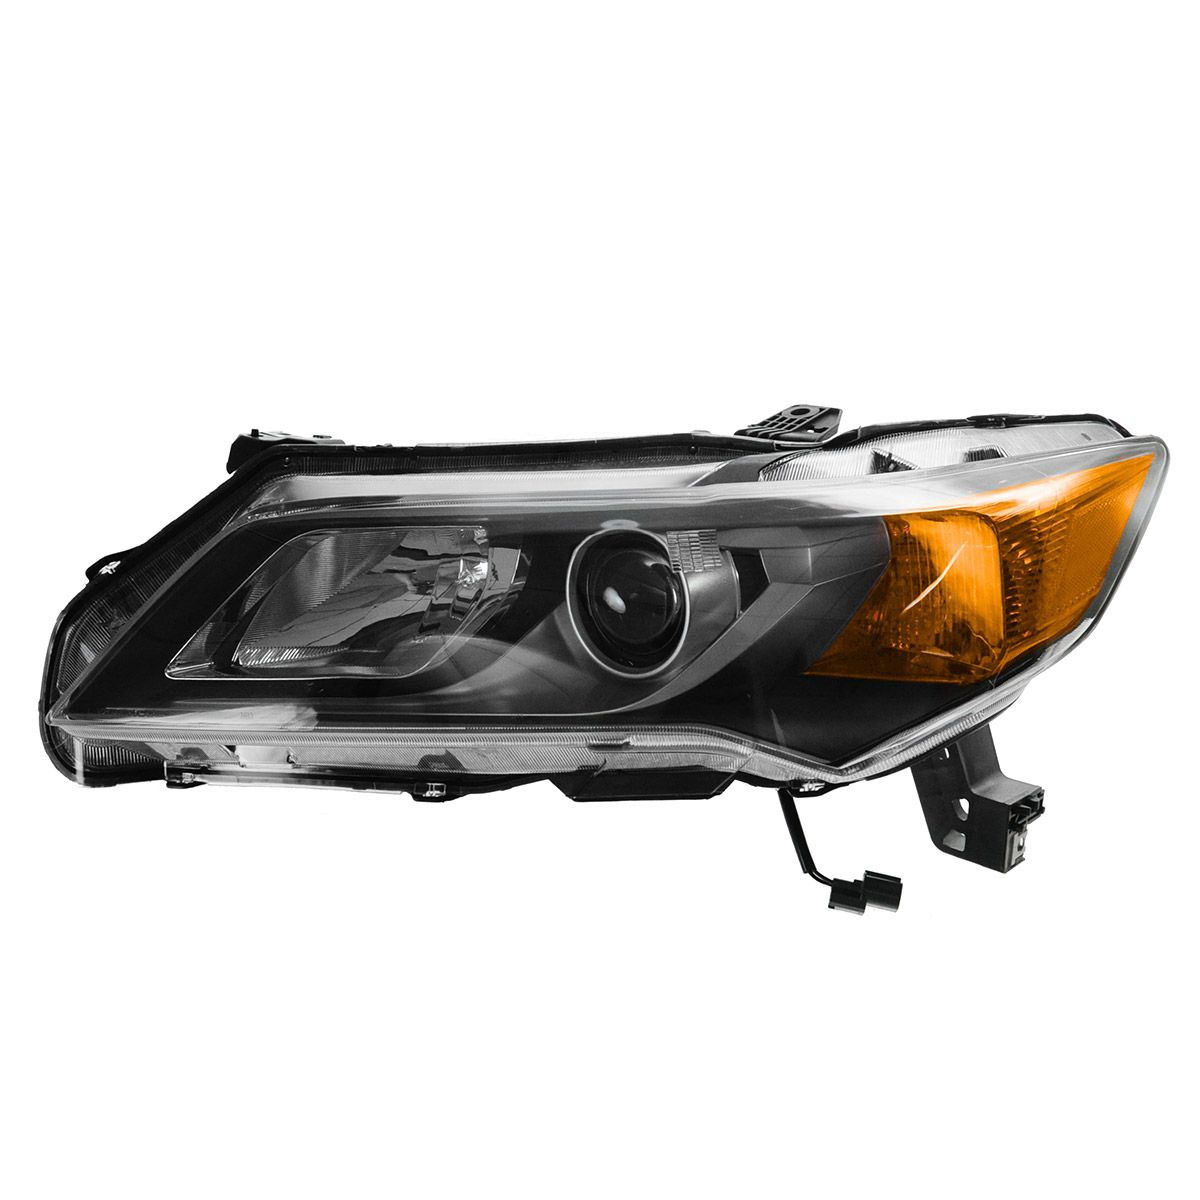 Headlight Headlamp Light Lamp Halogen Left Hand Driver